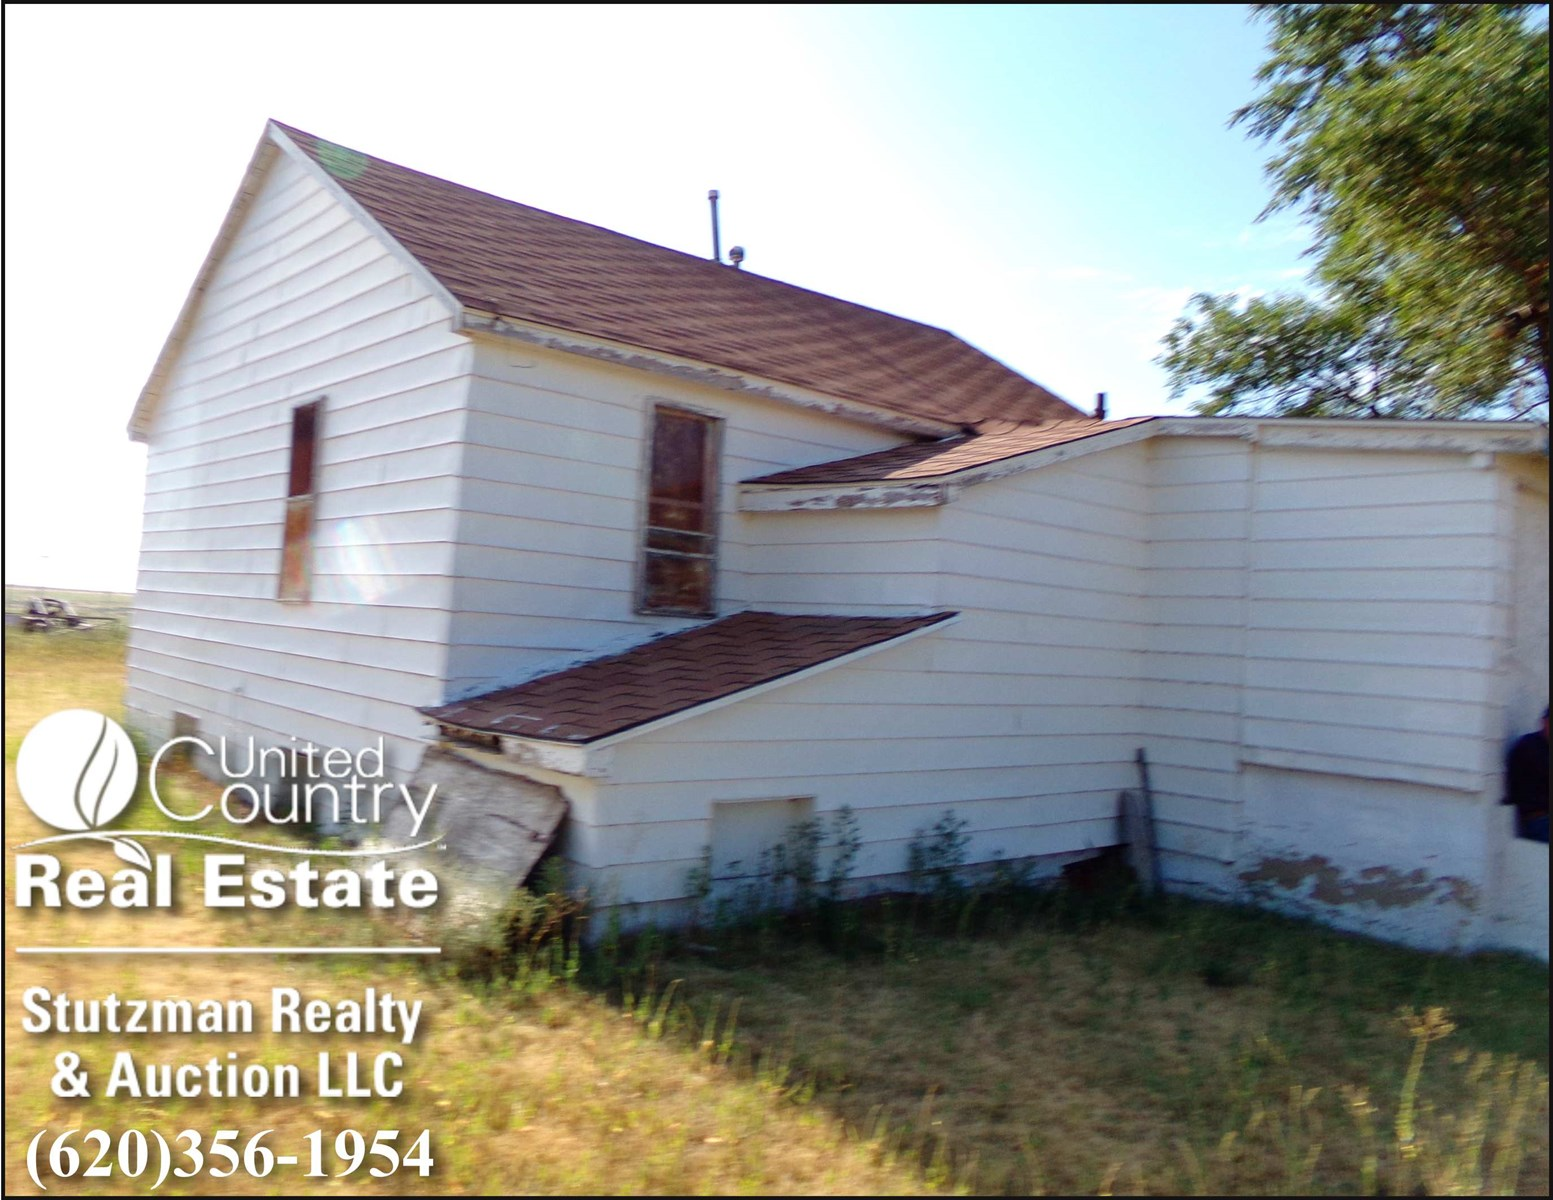 REAL ESTATE PRIVATE AUCTION - 1200 N HWY 27, SYRACUSE, KS